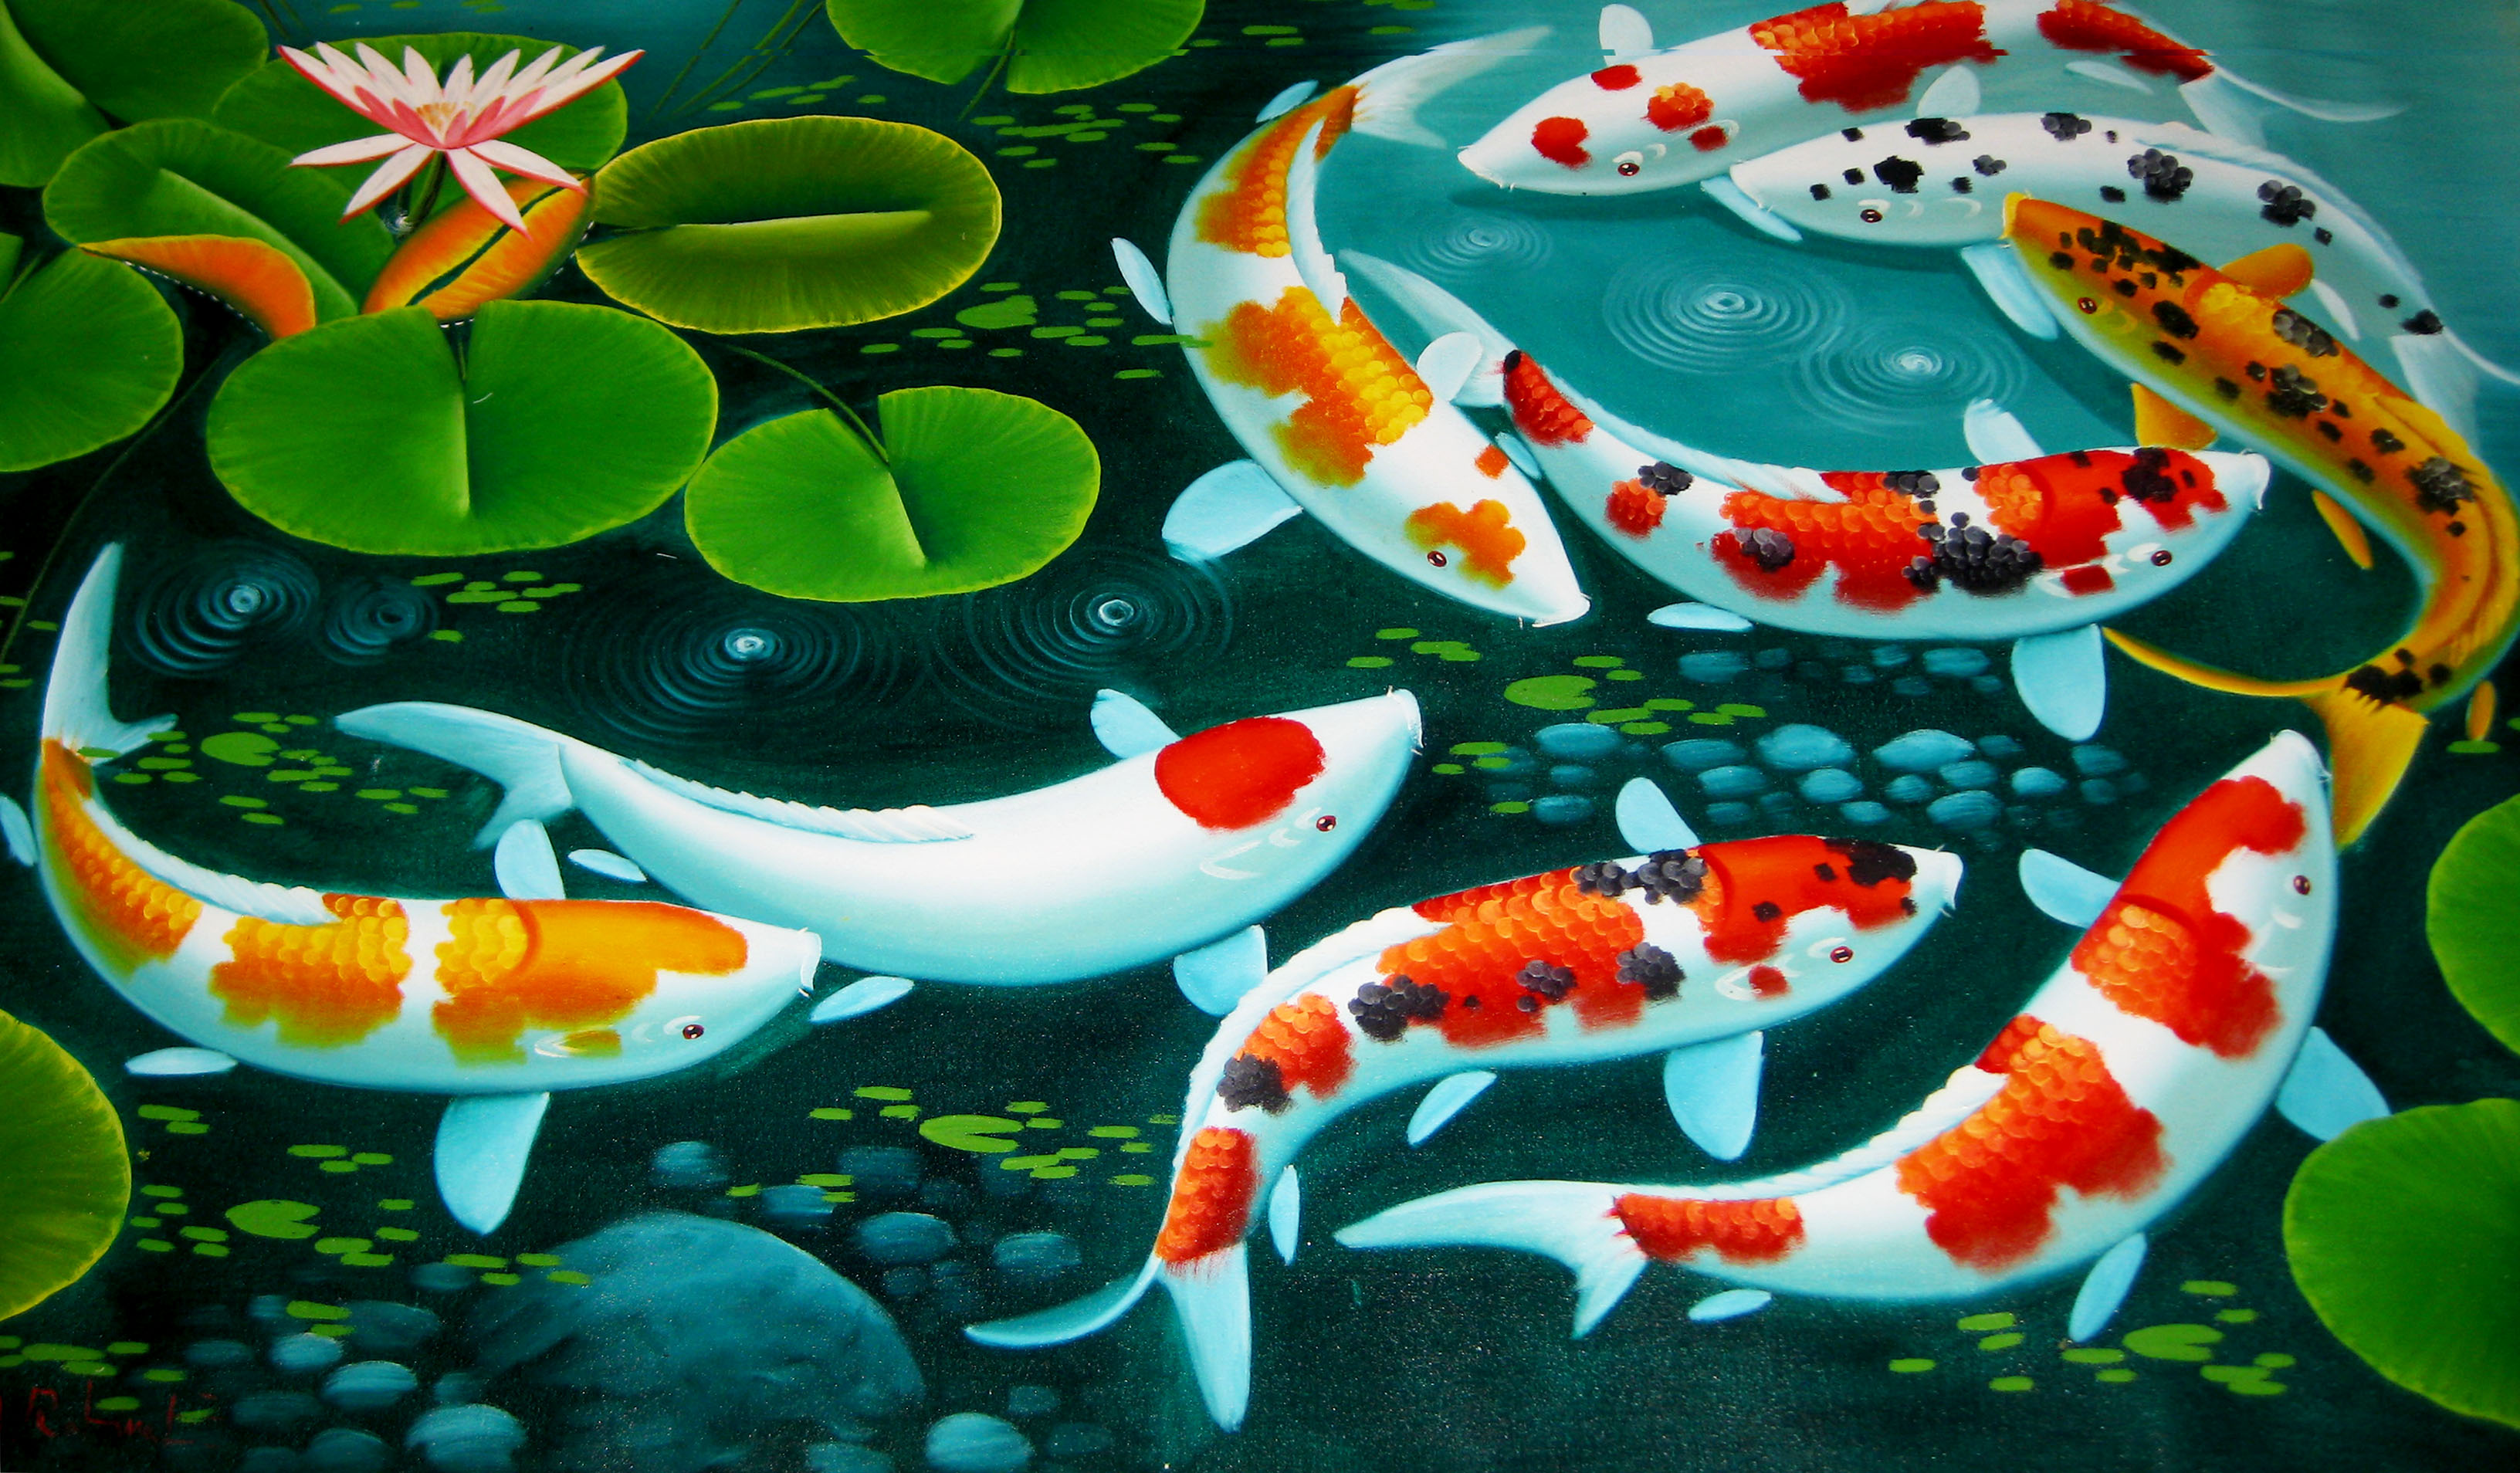 Koi pond wallpaper wallpapersafari for Koi fish pond